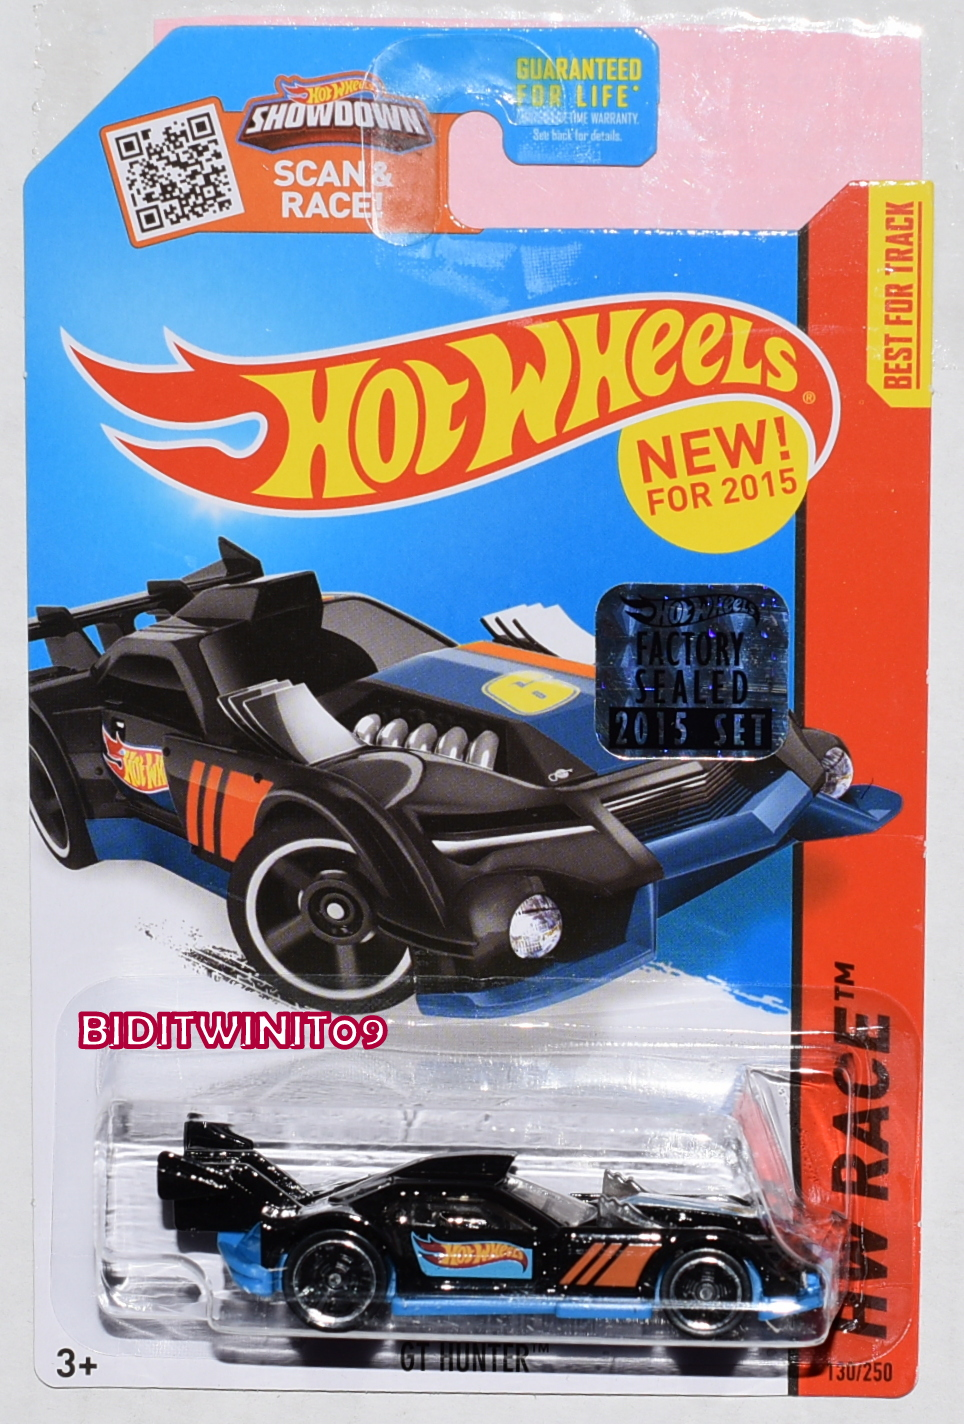 2017 US-only issue NEW MATCHBOX POWER GRABS #33 MBX S.C.P.R.X. Scraper